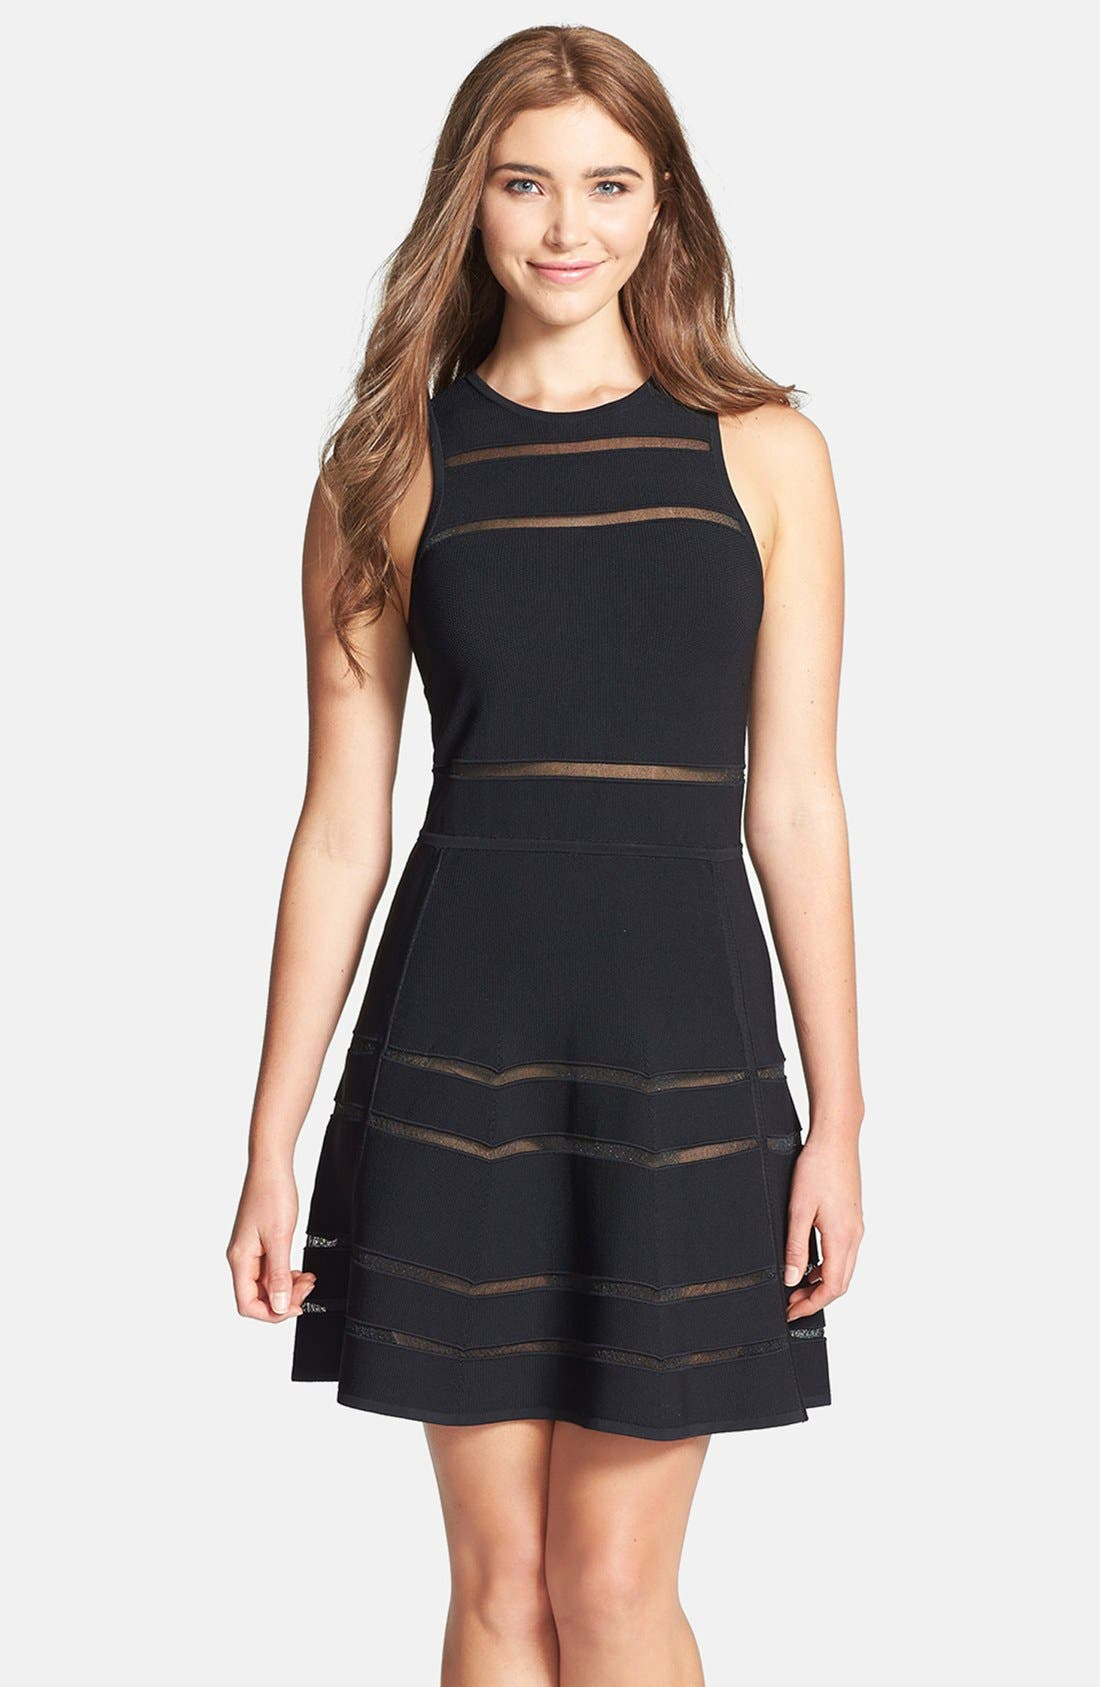 Main Image - Nicole Miller 'Cody' Banded Knit Fit & Flare Dress